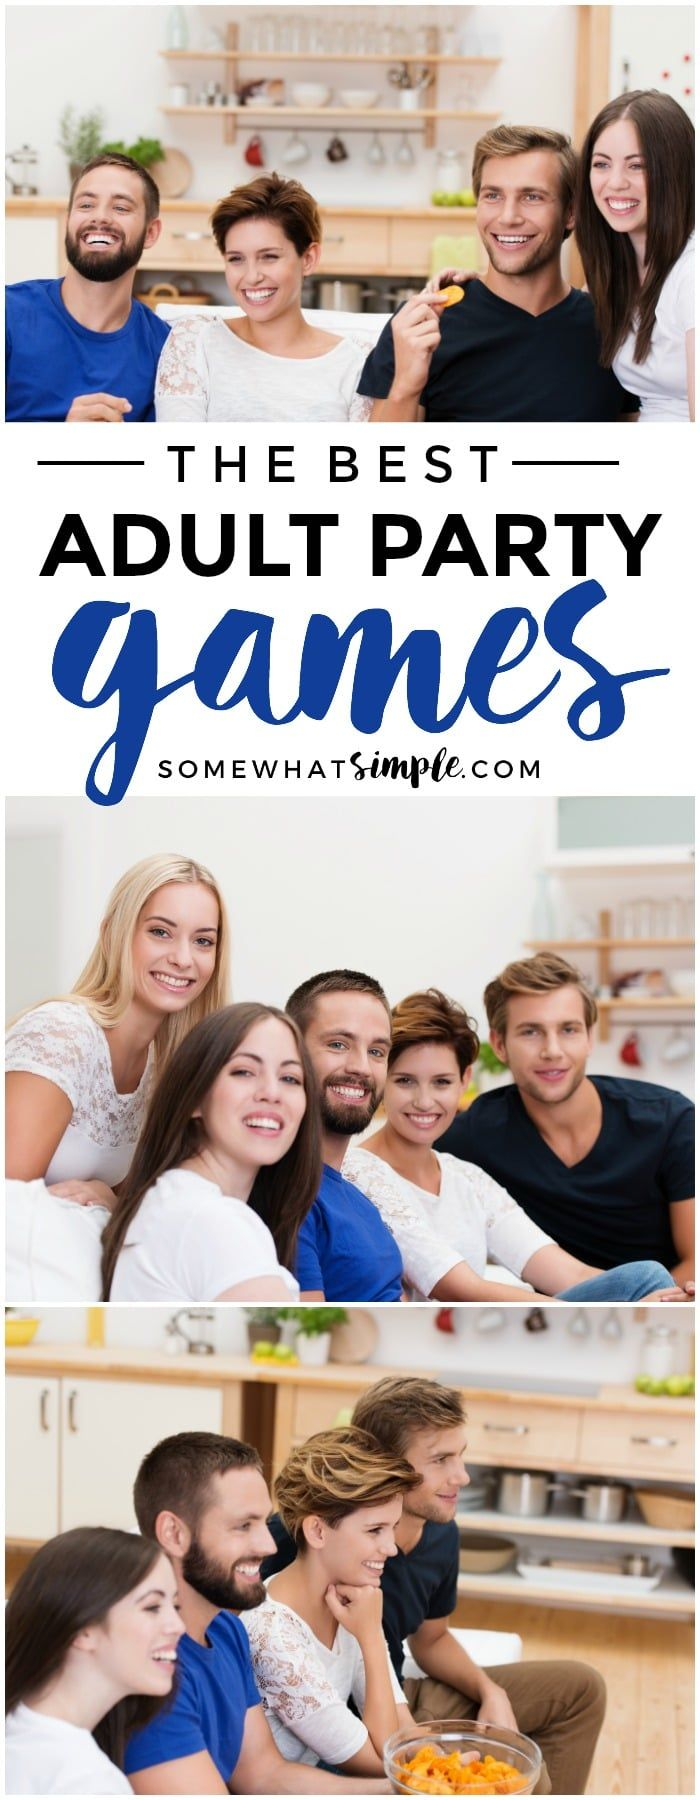 Adult Party Games | Whether you're playing with just a few friends or a huge crowd of couples, these adult party games are sure to entertain!